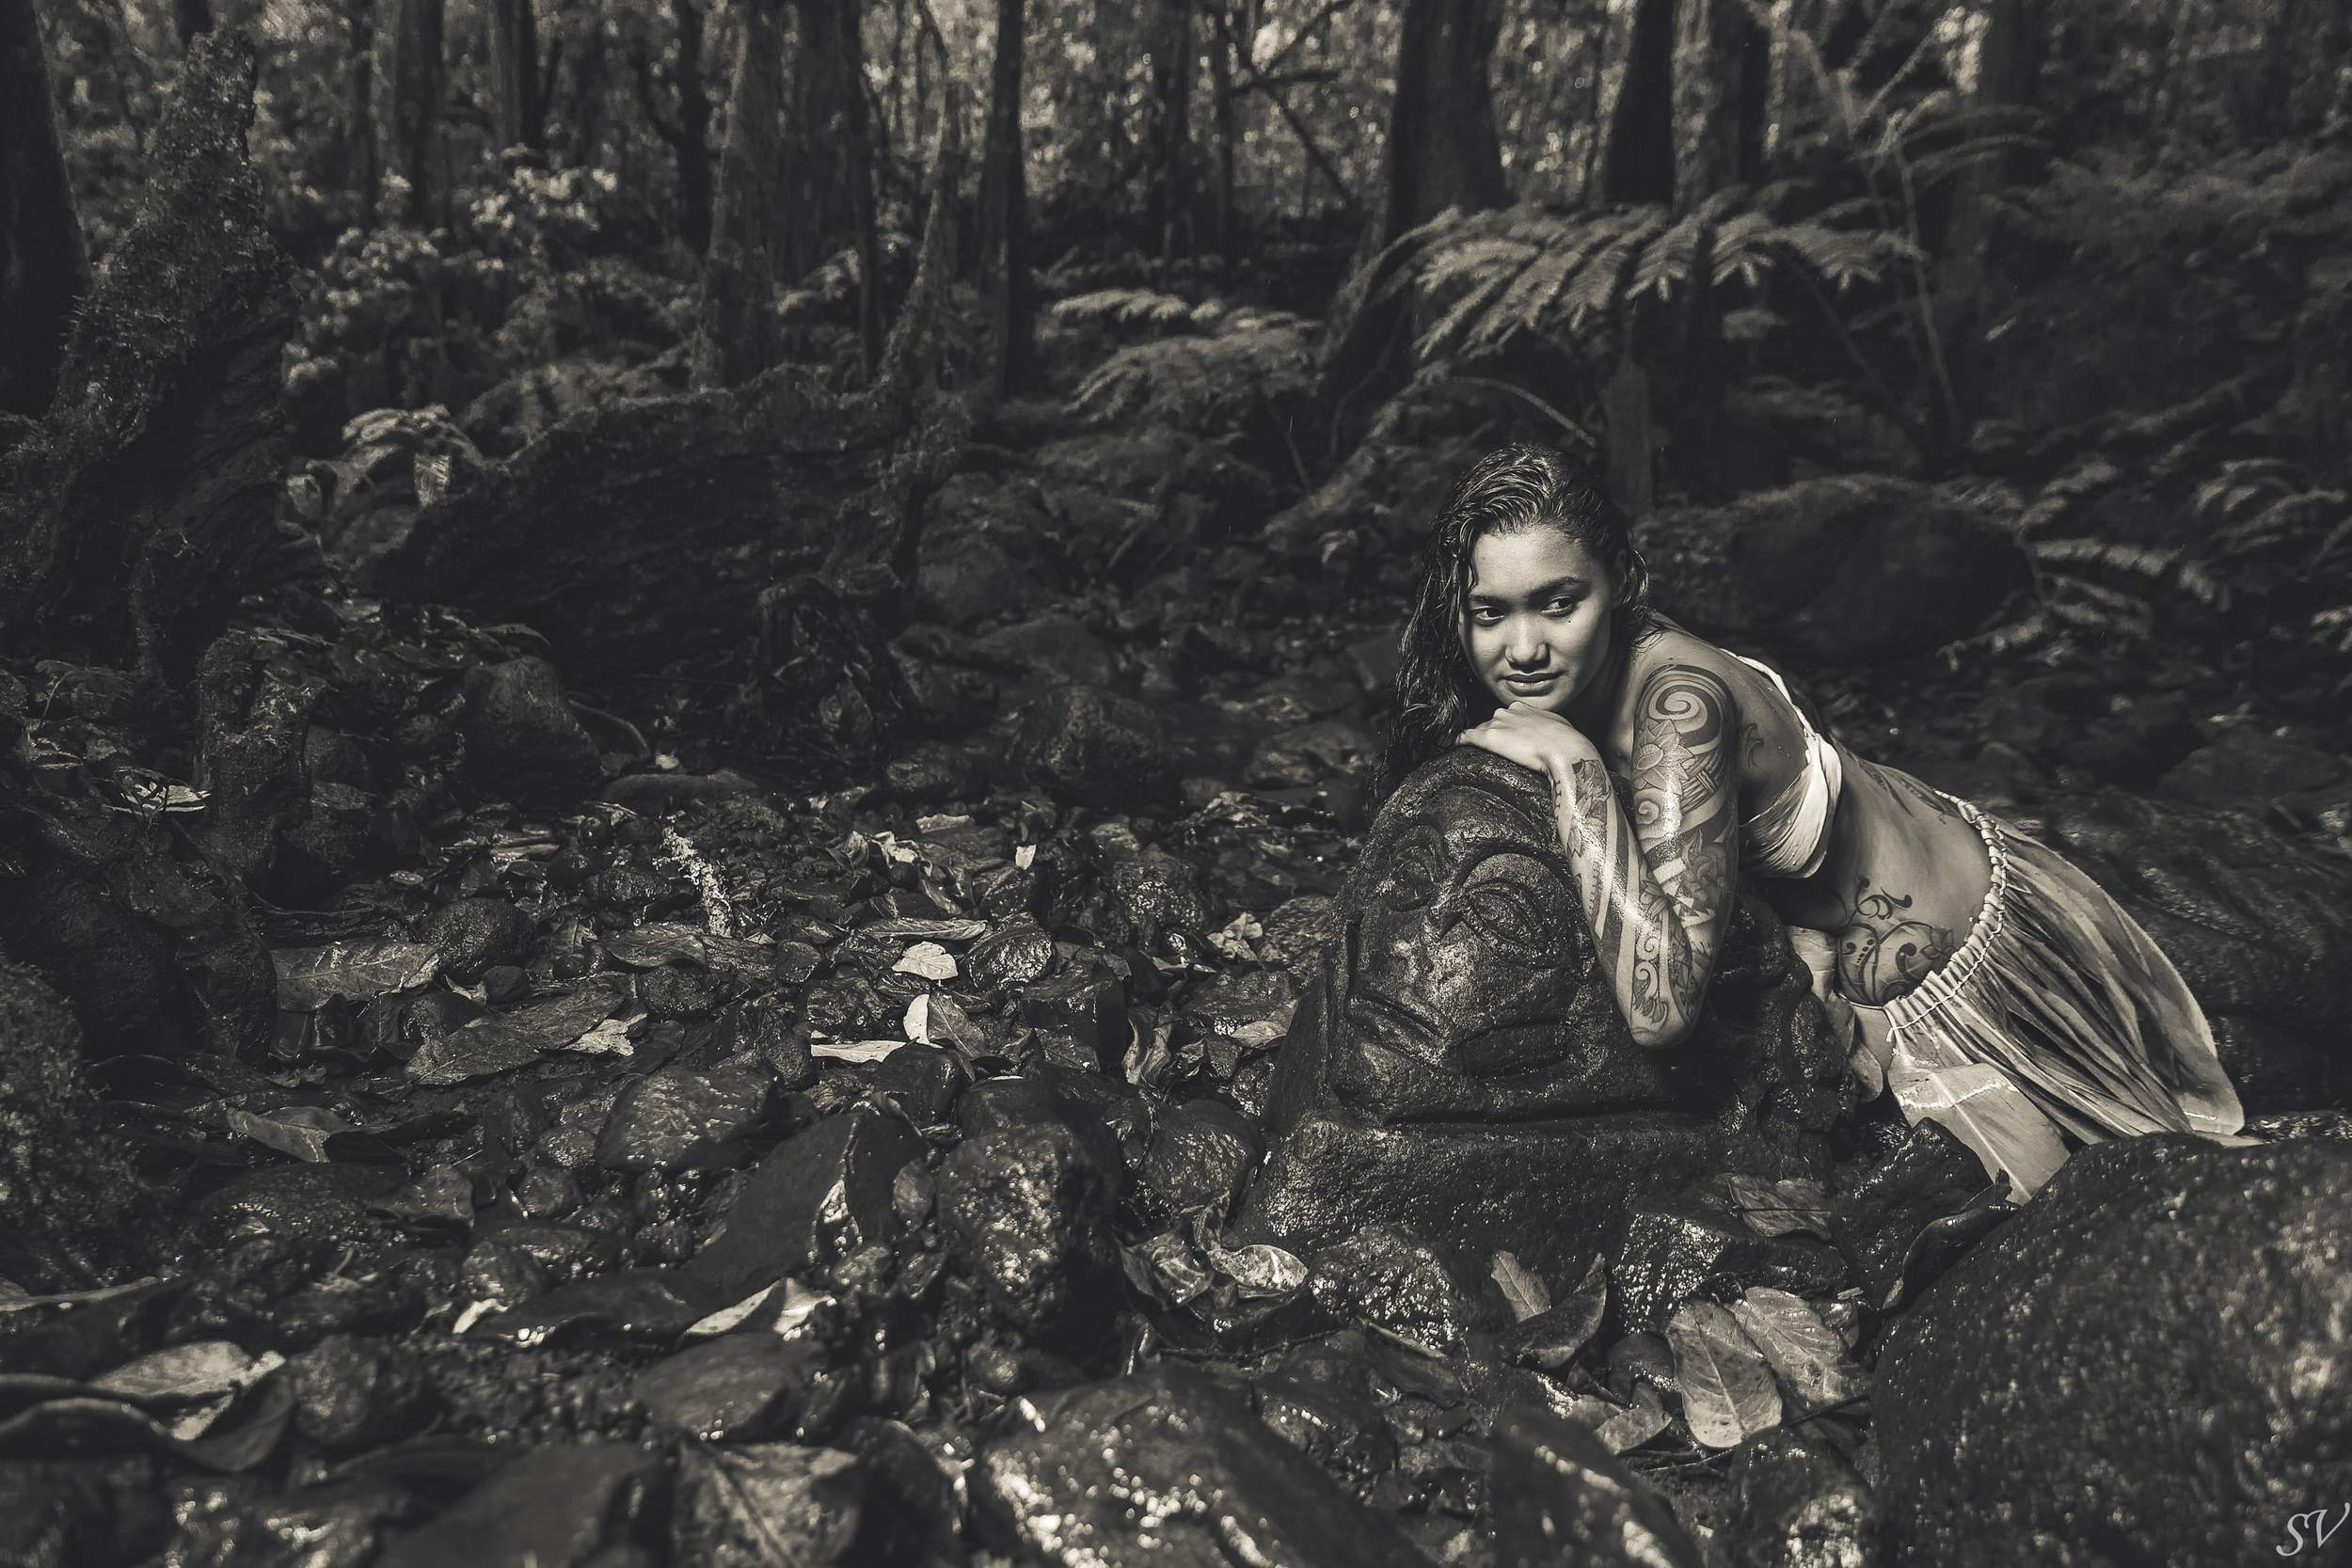 """Show me your roots"" personal project about Polynesian and Maori culture continue in Moorea."